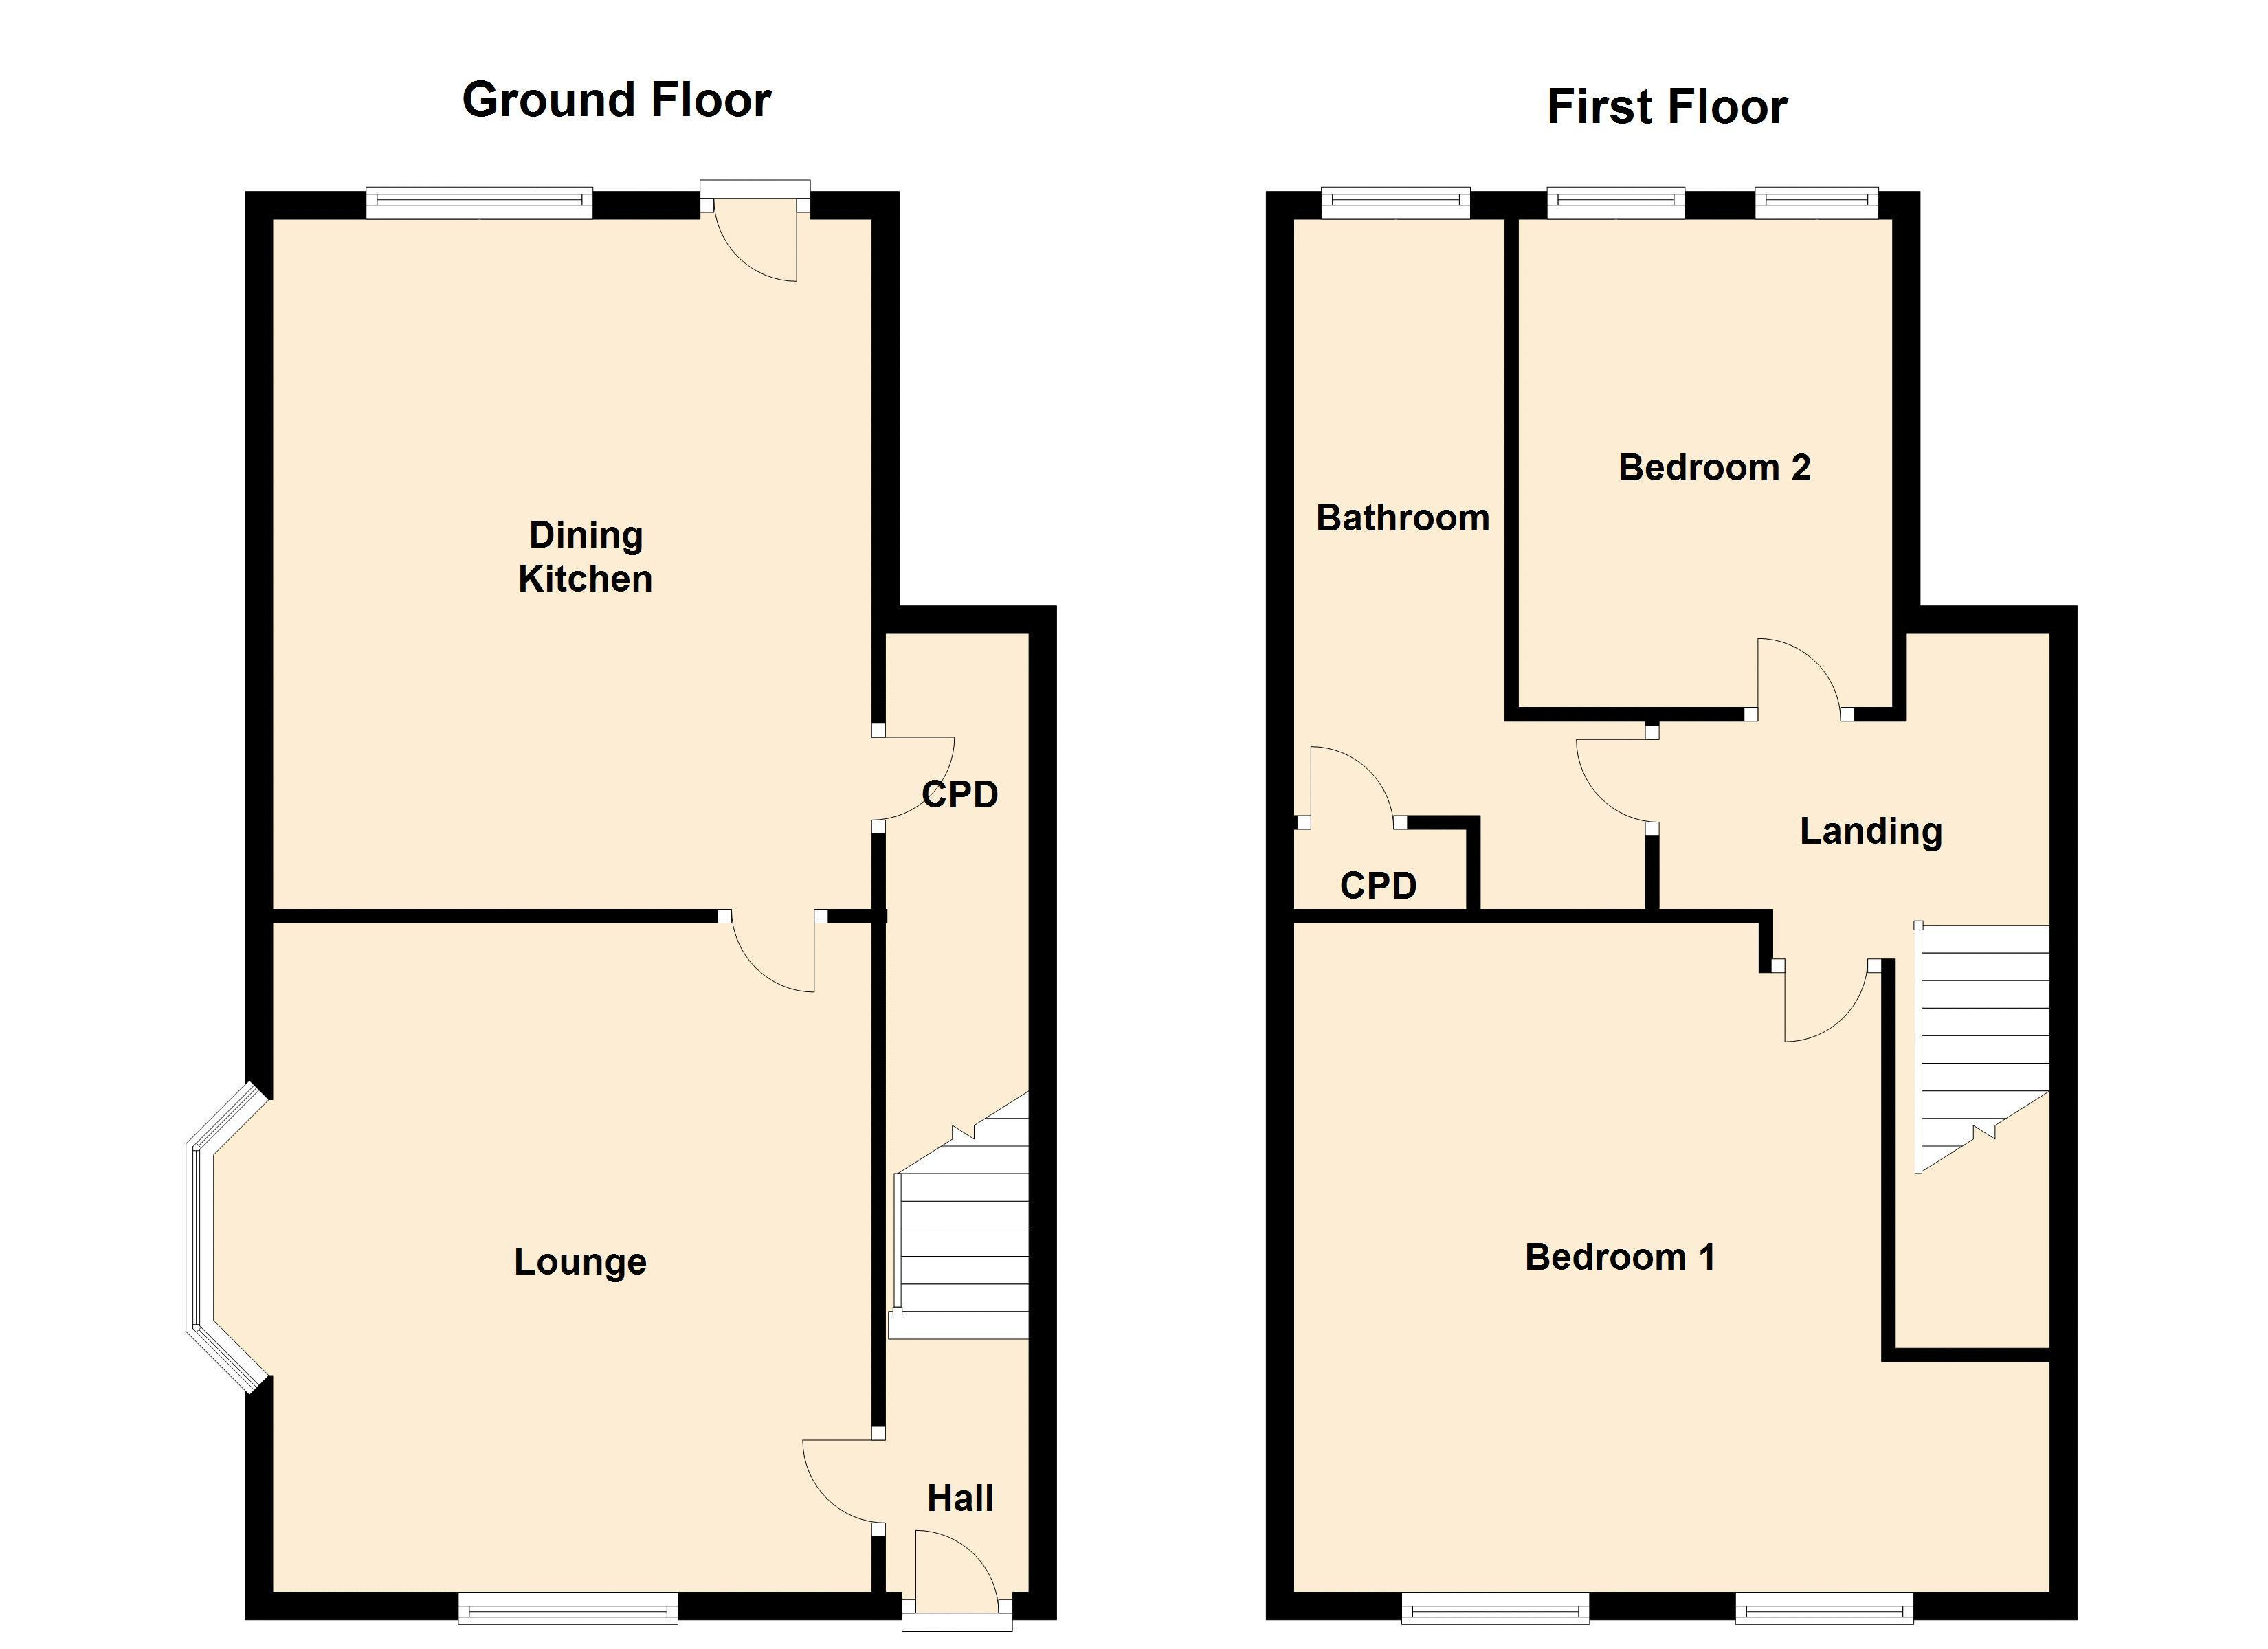 Ground/First Floors